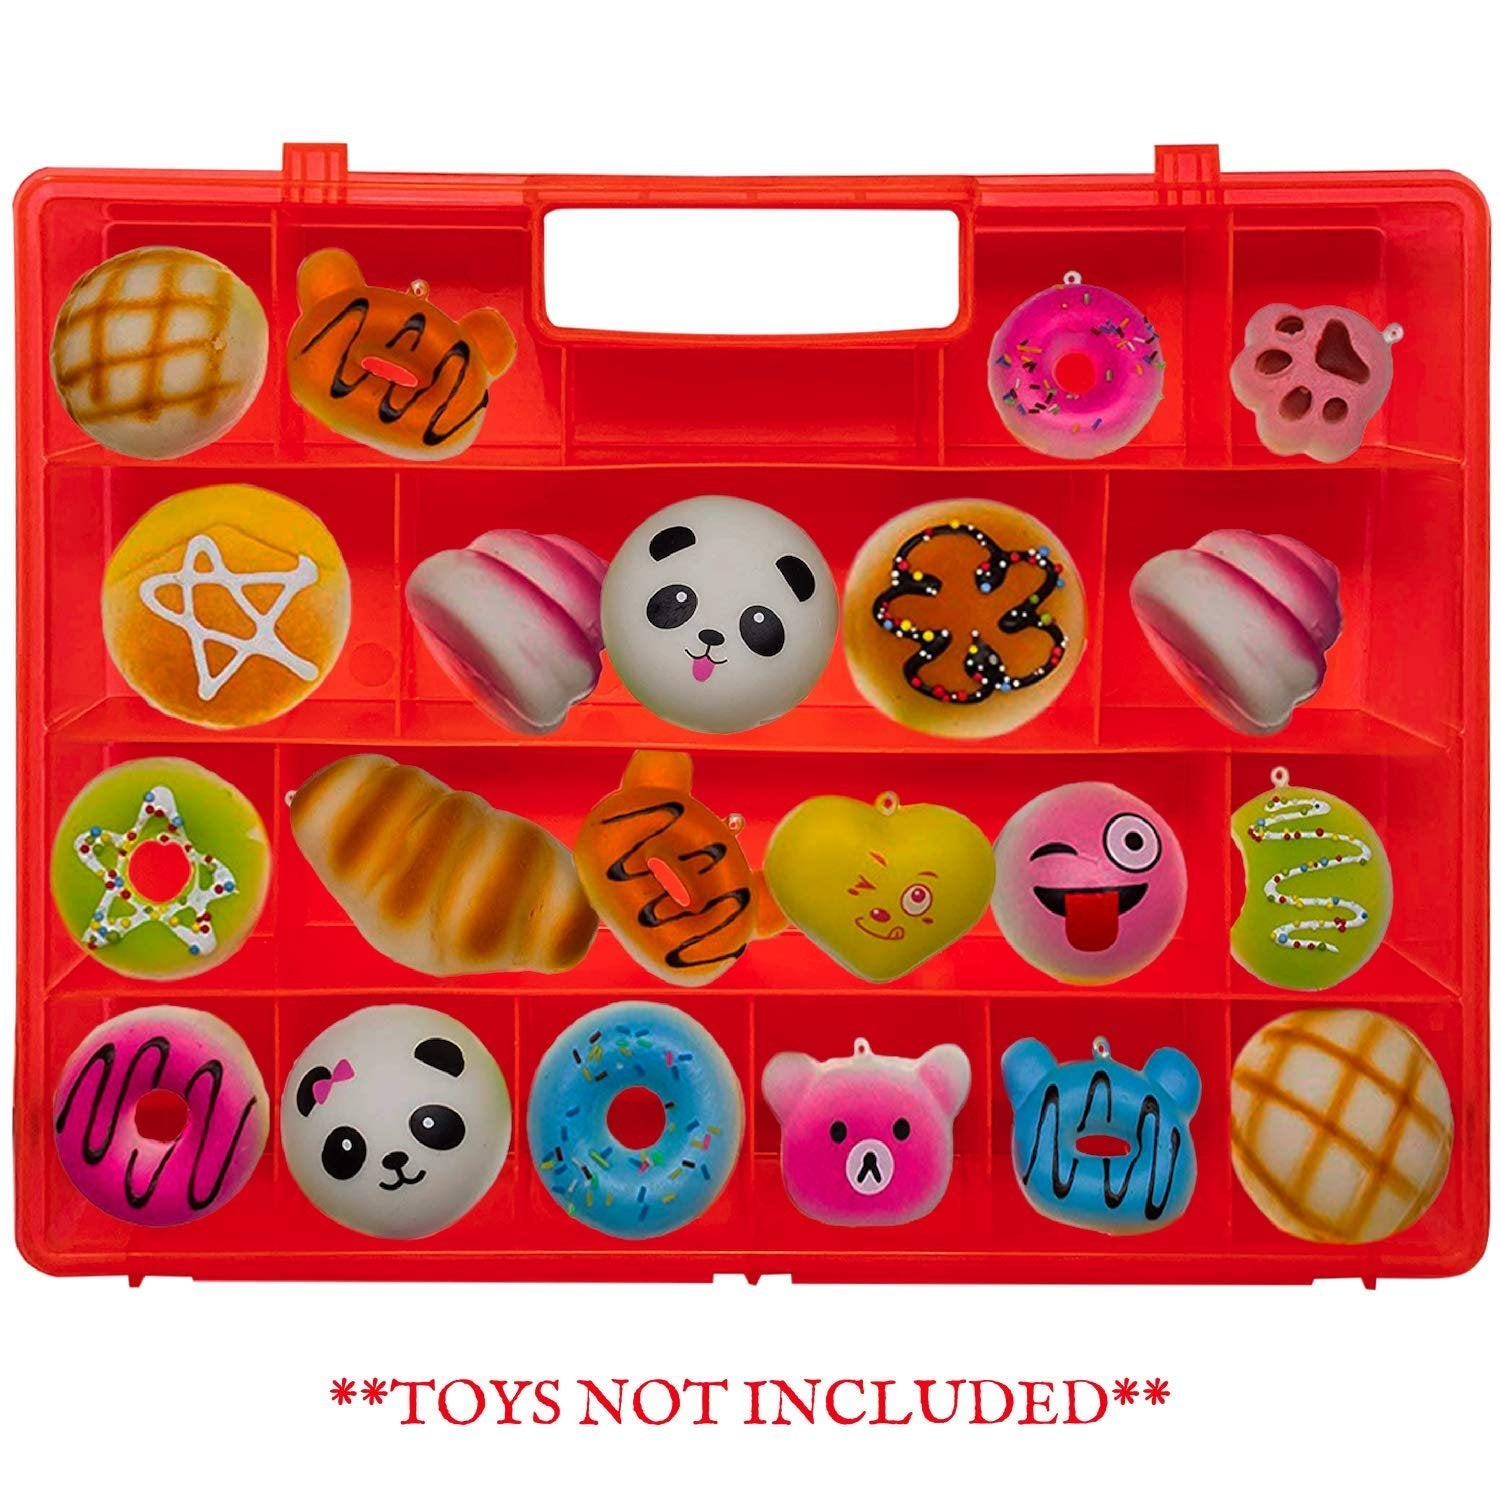 Life Made Better, Newly Designed, Tougher & Longer-Lasting Red Toy Storage Box, Compatible with Squishies, Kid-Friendly, Stronger All-in-One Handle, Made